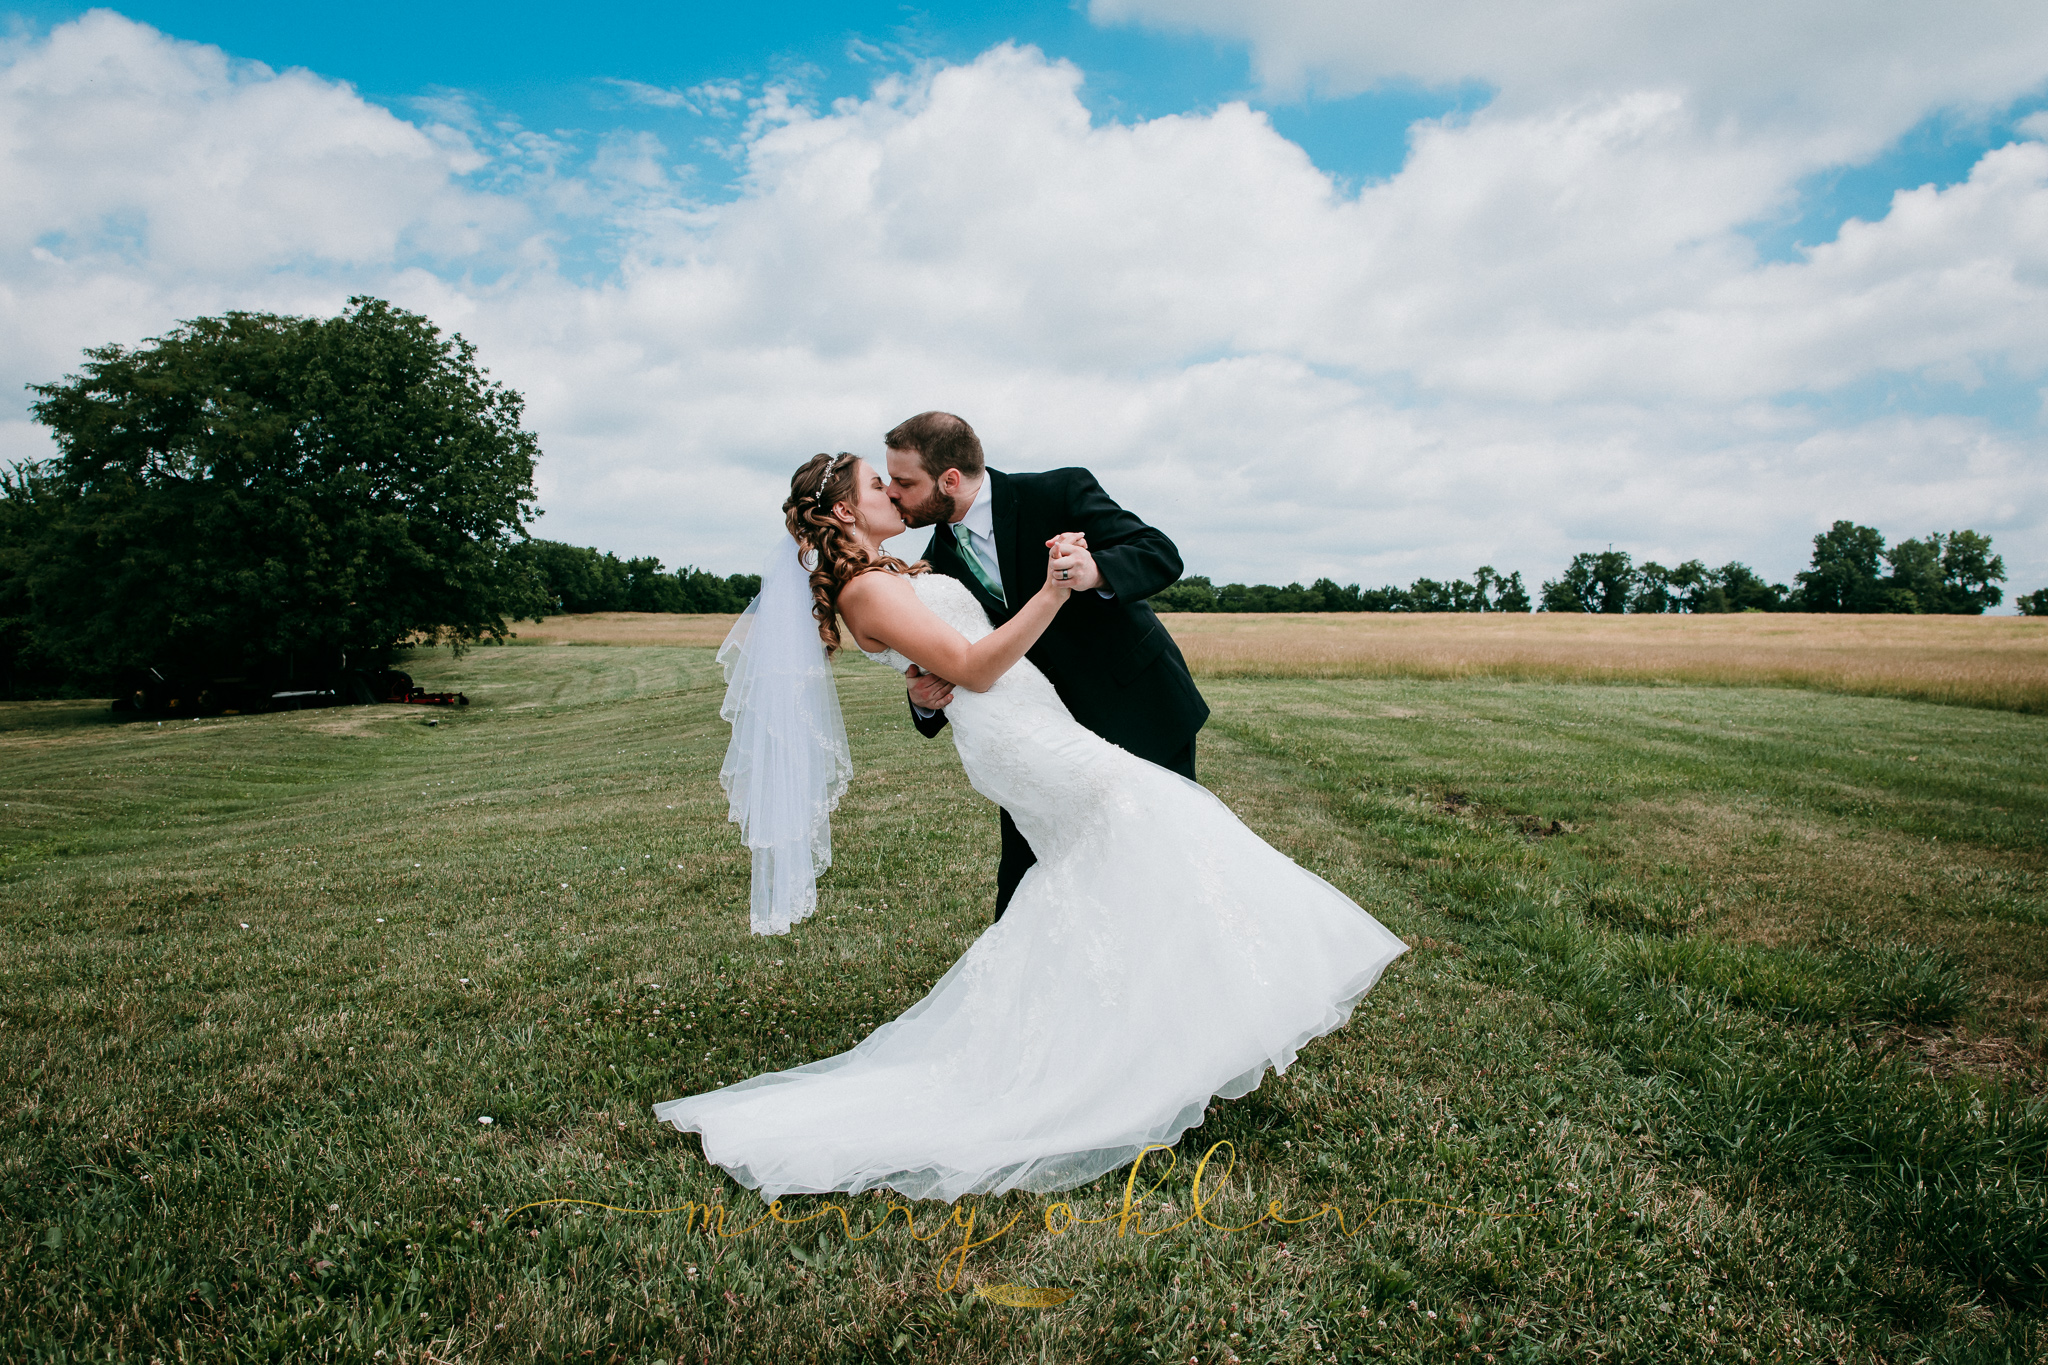 Groom dips bride and kisses her in wide open field under blue sky. © Merry Ohler Creative, 2019. Photo by Merry Ohler, who is the best wedding photographer in Kansas City.